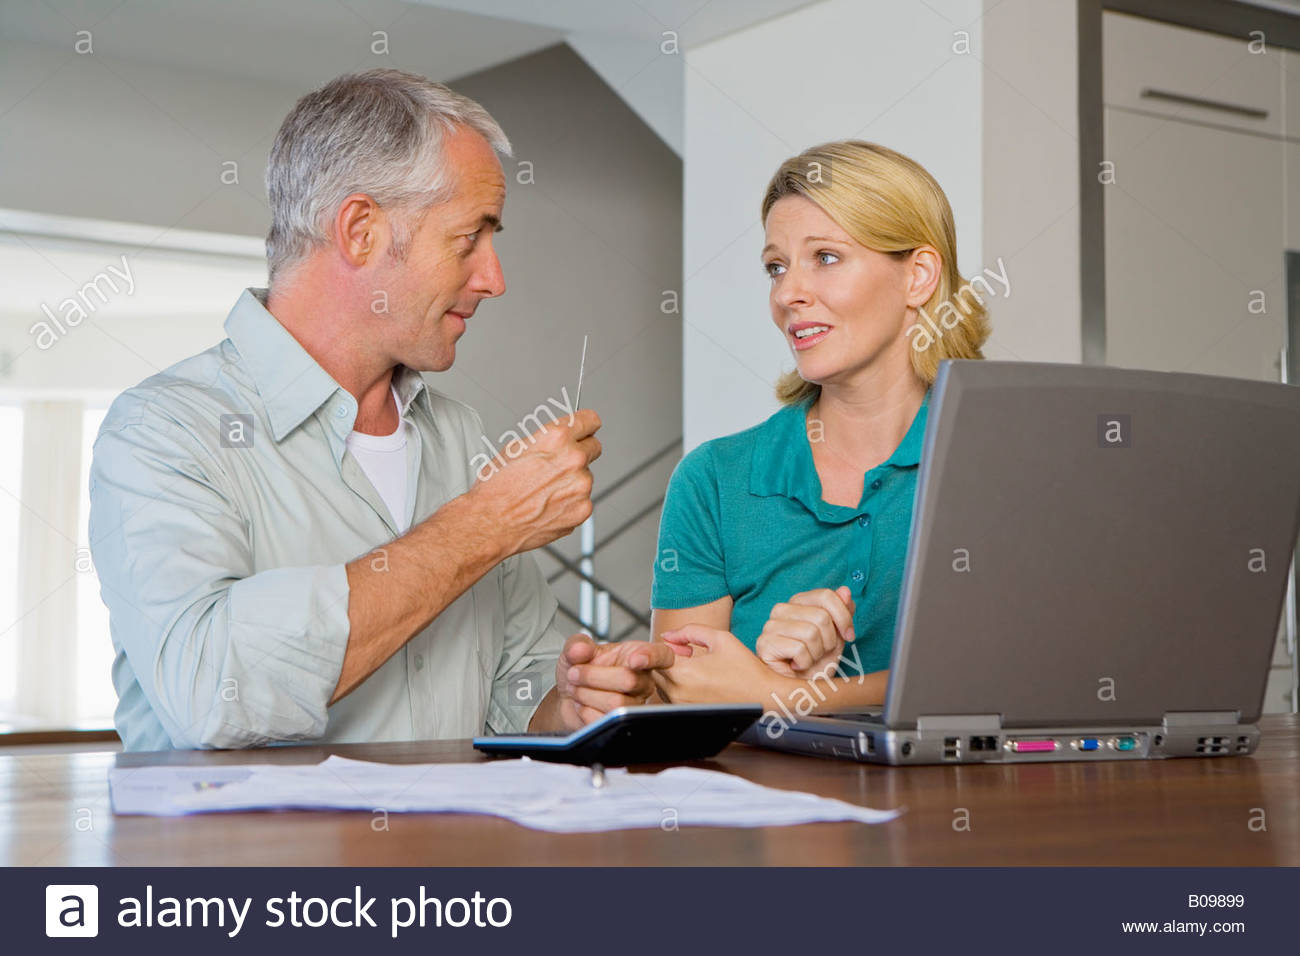 Mature couple arguing about financial situation, using calculator and Laptop - Stock Image